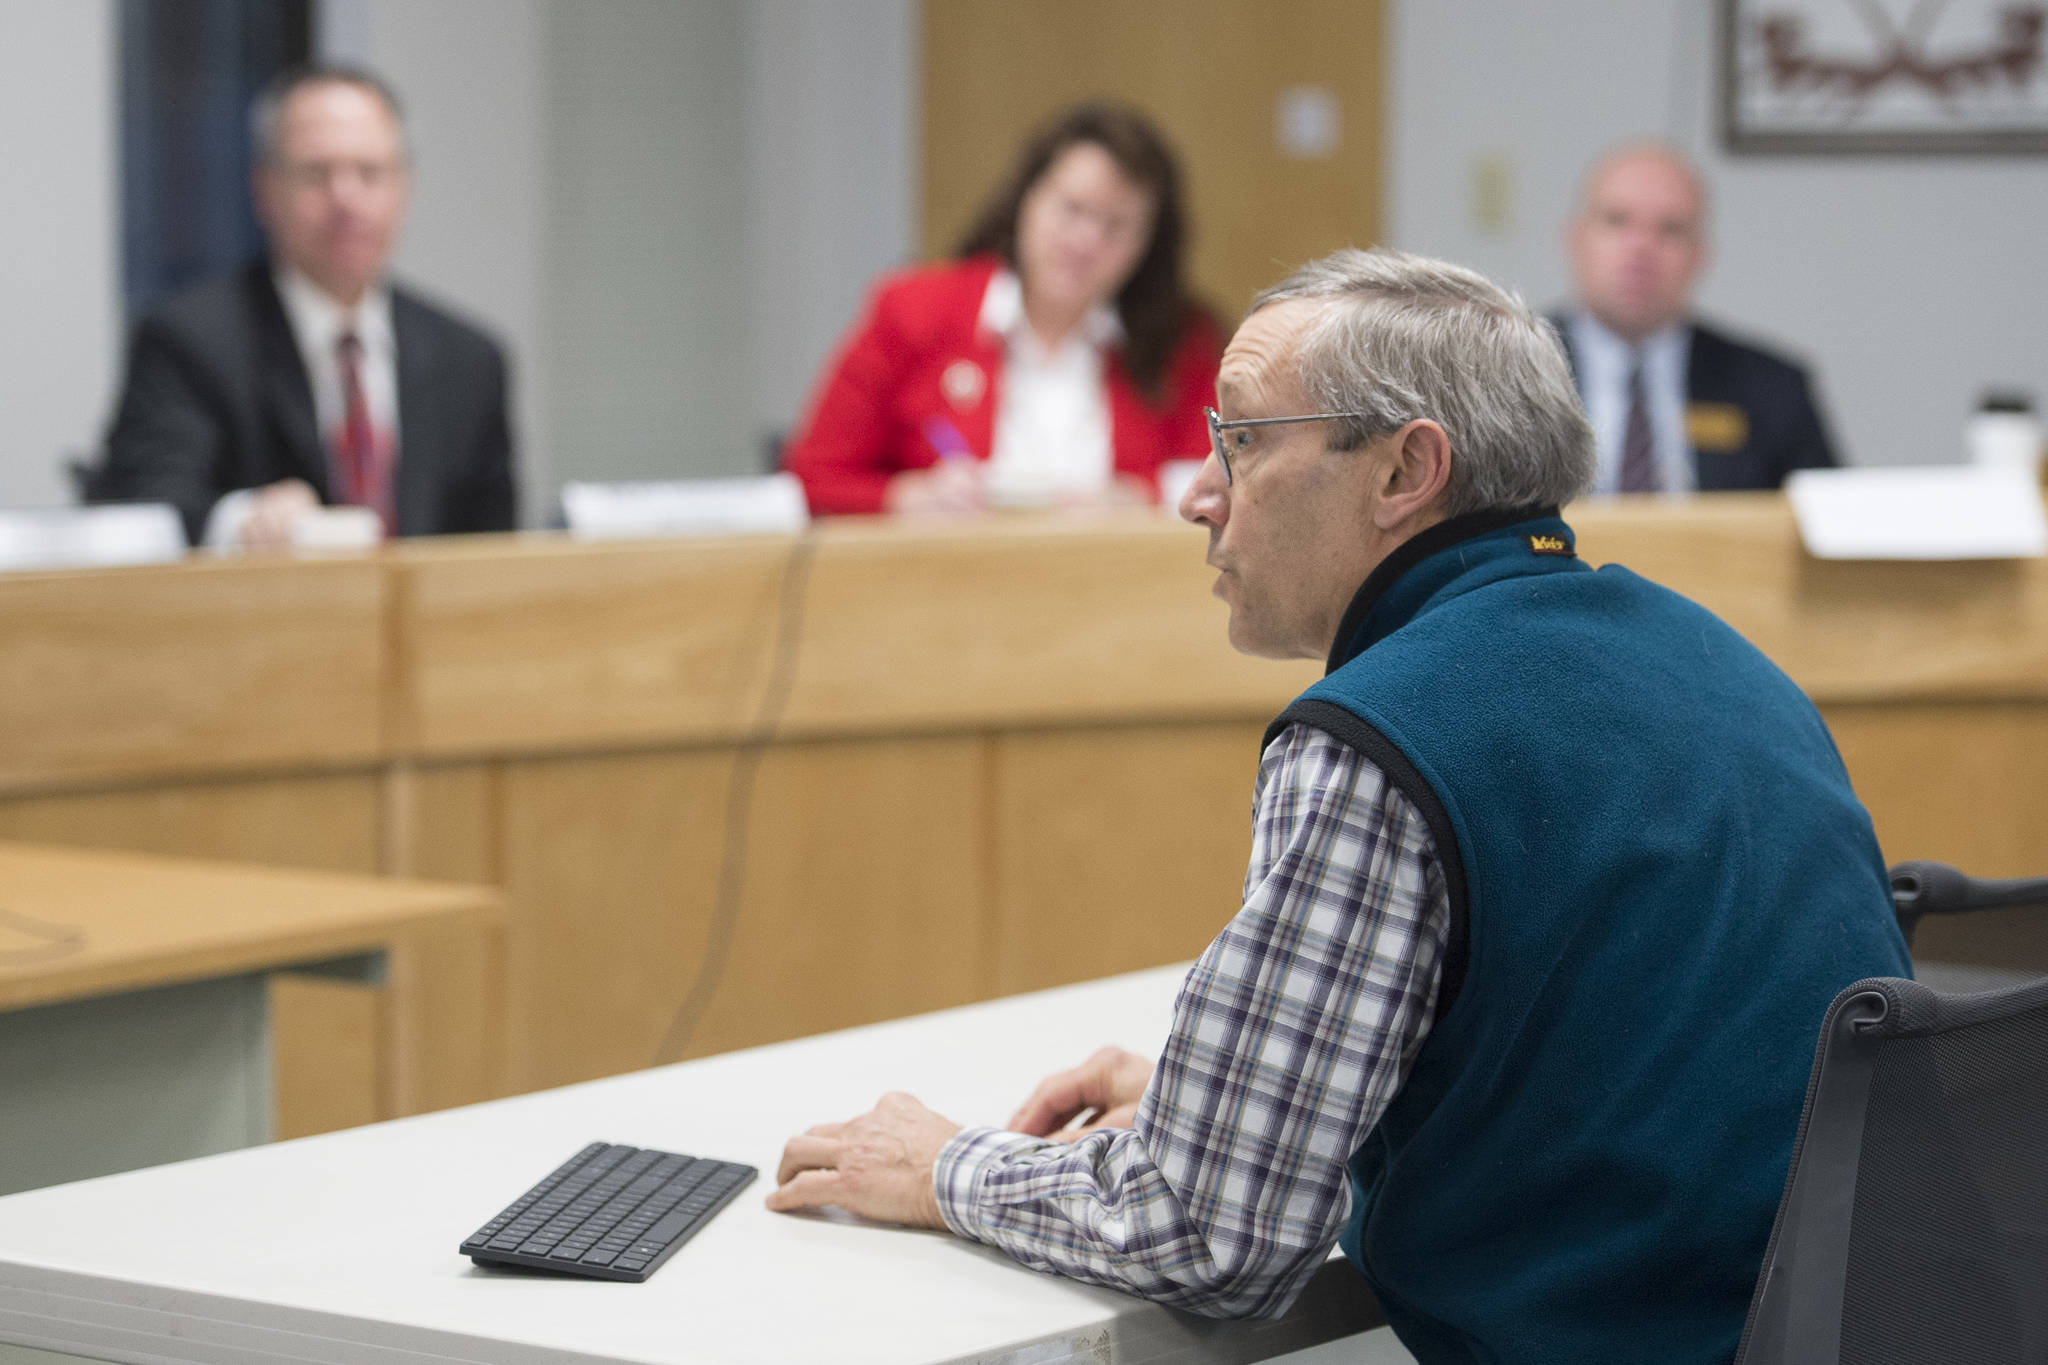 Doug Woodby, co-chair of climate action group @350 Juneau, speaks to the Alaska Permanent Fund Corporation's Board of Trustees during its quarterly meeting in Juneau on Tuesday, Dec. 11, 2018. The local chapter of the national environmental group has been asking the trustees to divest from fossil fuel investments.